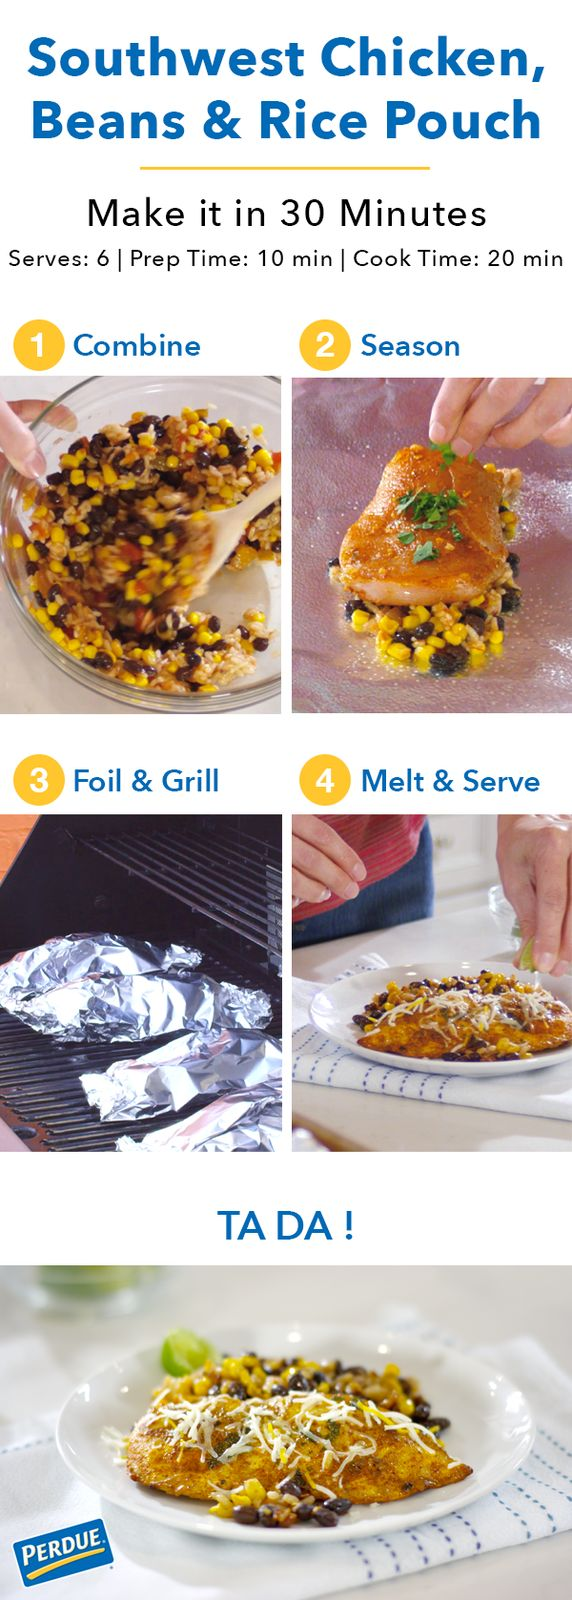 These Southwest Chicken, Beans & Rice Pouches are a super delicious and easy summer dinner. Pop these foil packets filled with Perdue® Perfect Portions® Boneless, Skinless Chicken Breast on the grill and have dinner on the table in no time. Check out the full recipe by clicking the image.